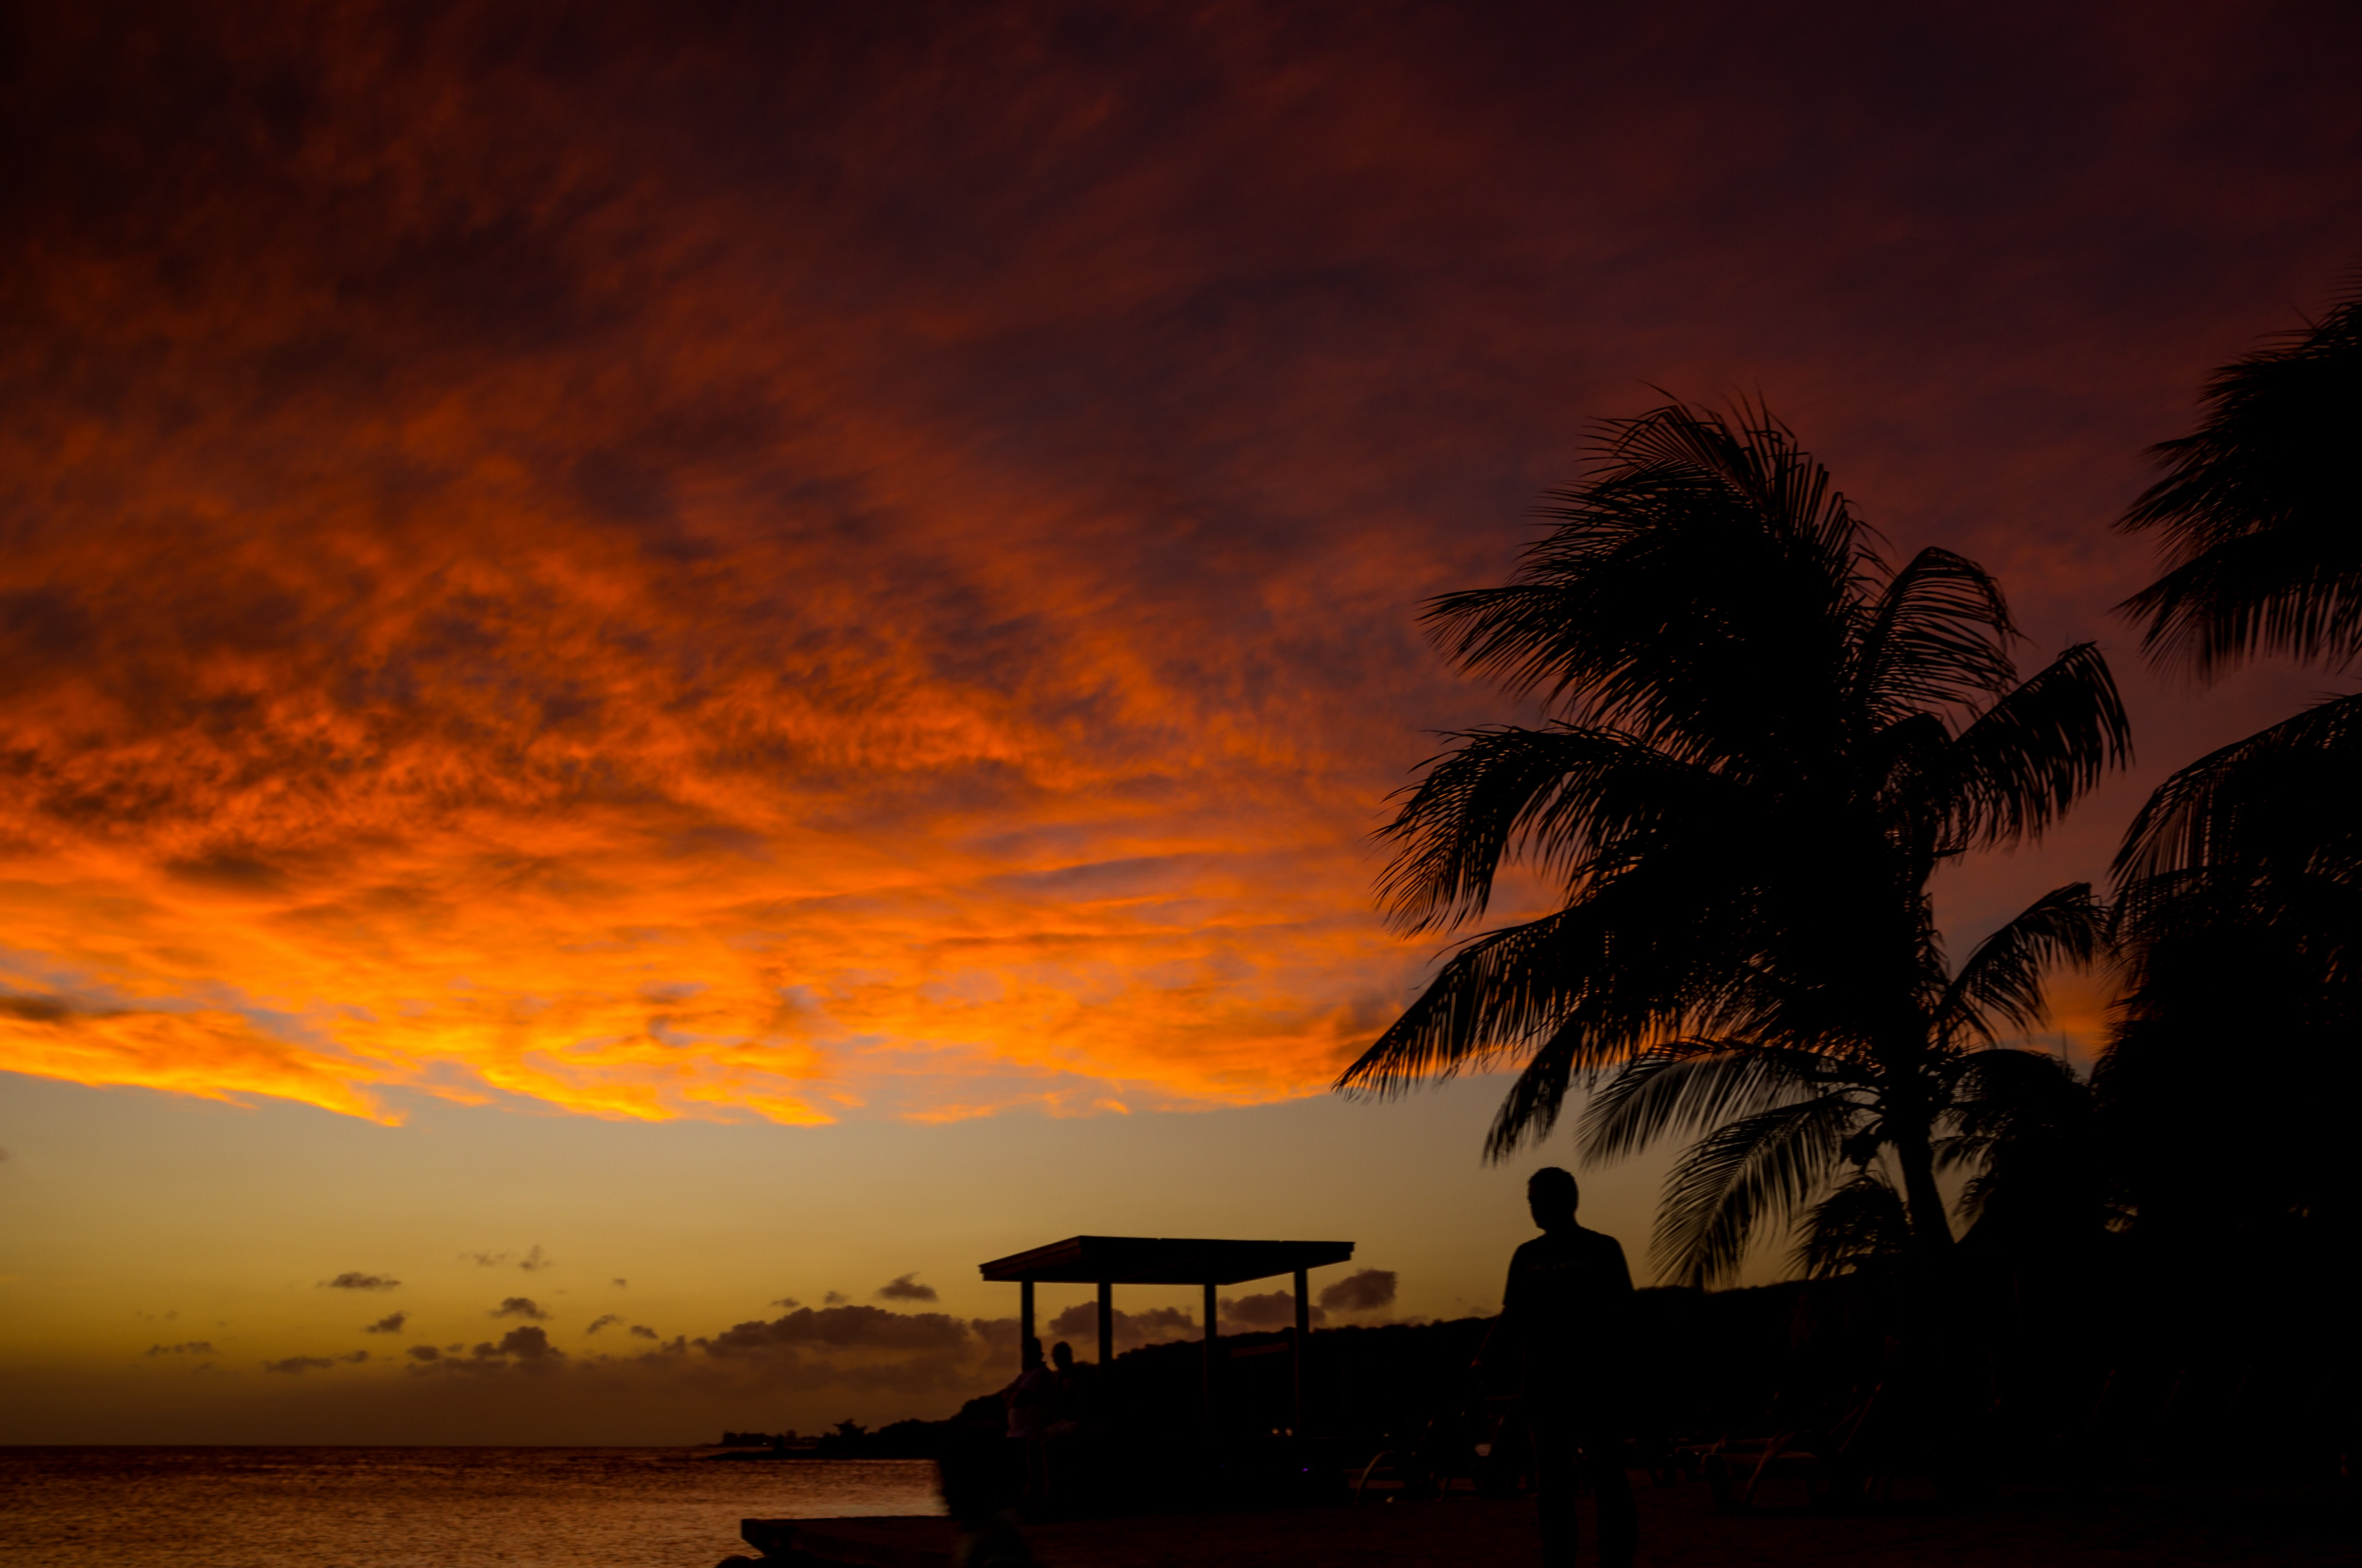 A person next to a palm tree is watching the sunset at the beach in Curaçao